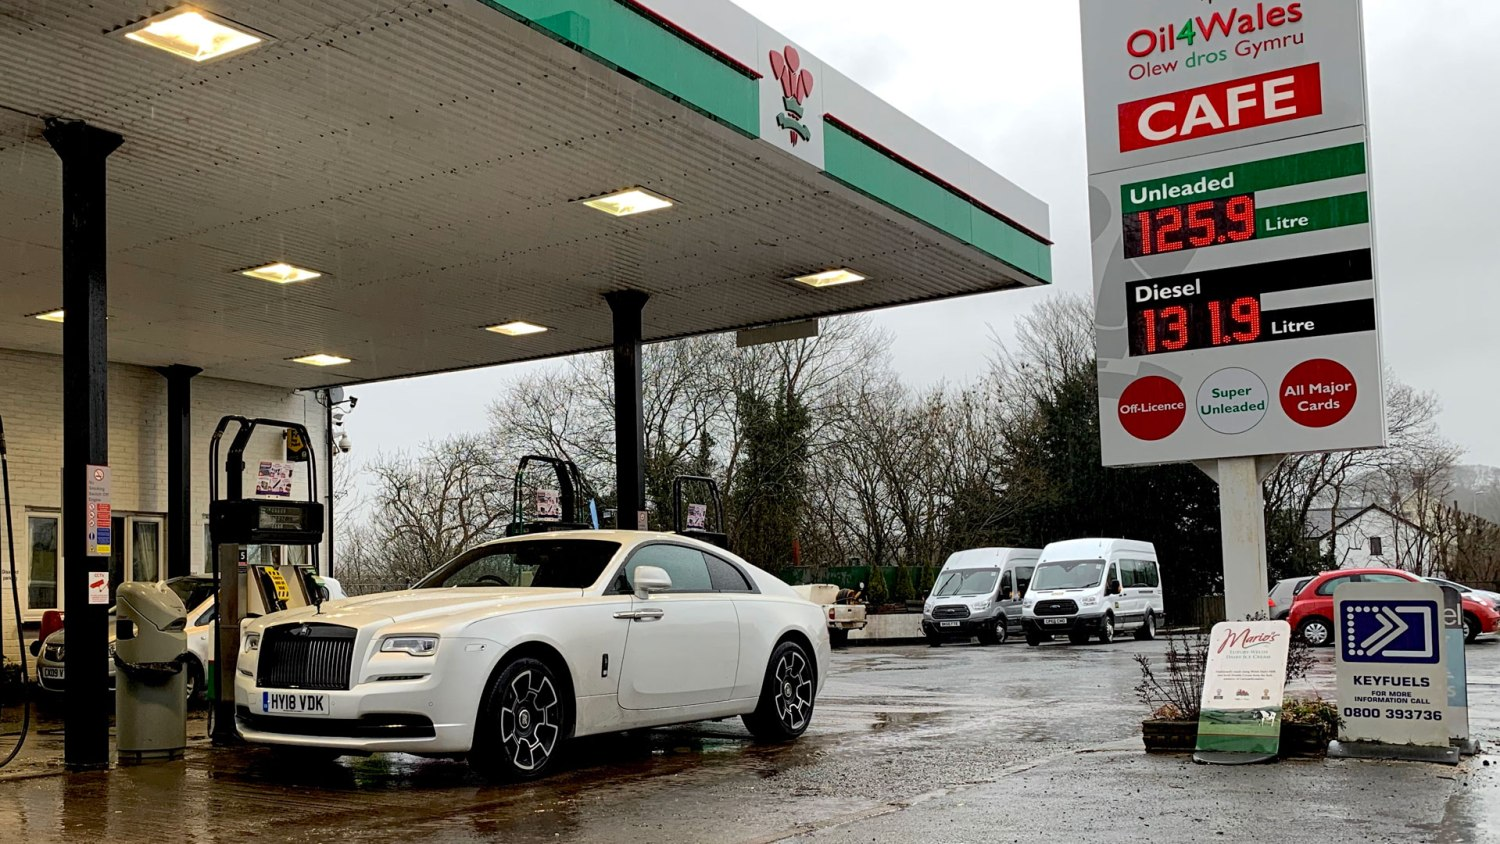 Rolls-Royce Wraith Black Badge petrol station